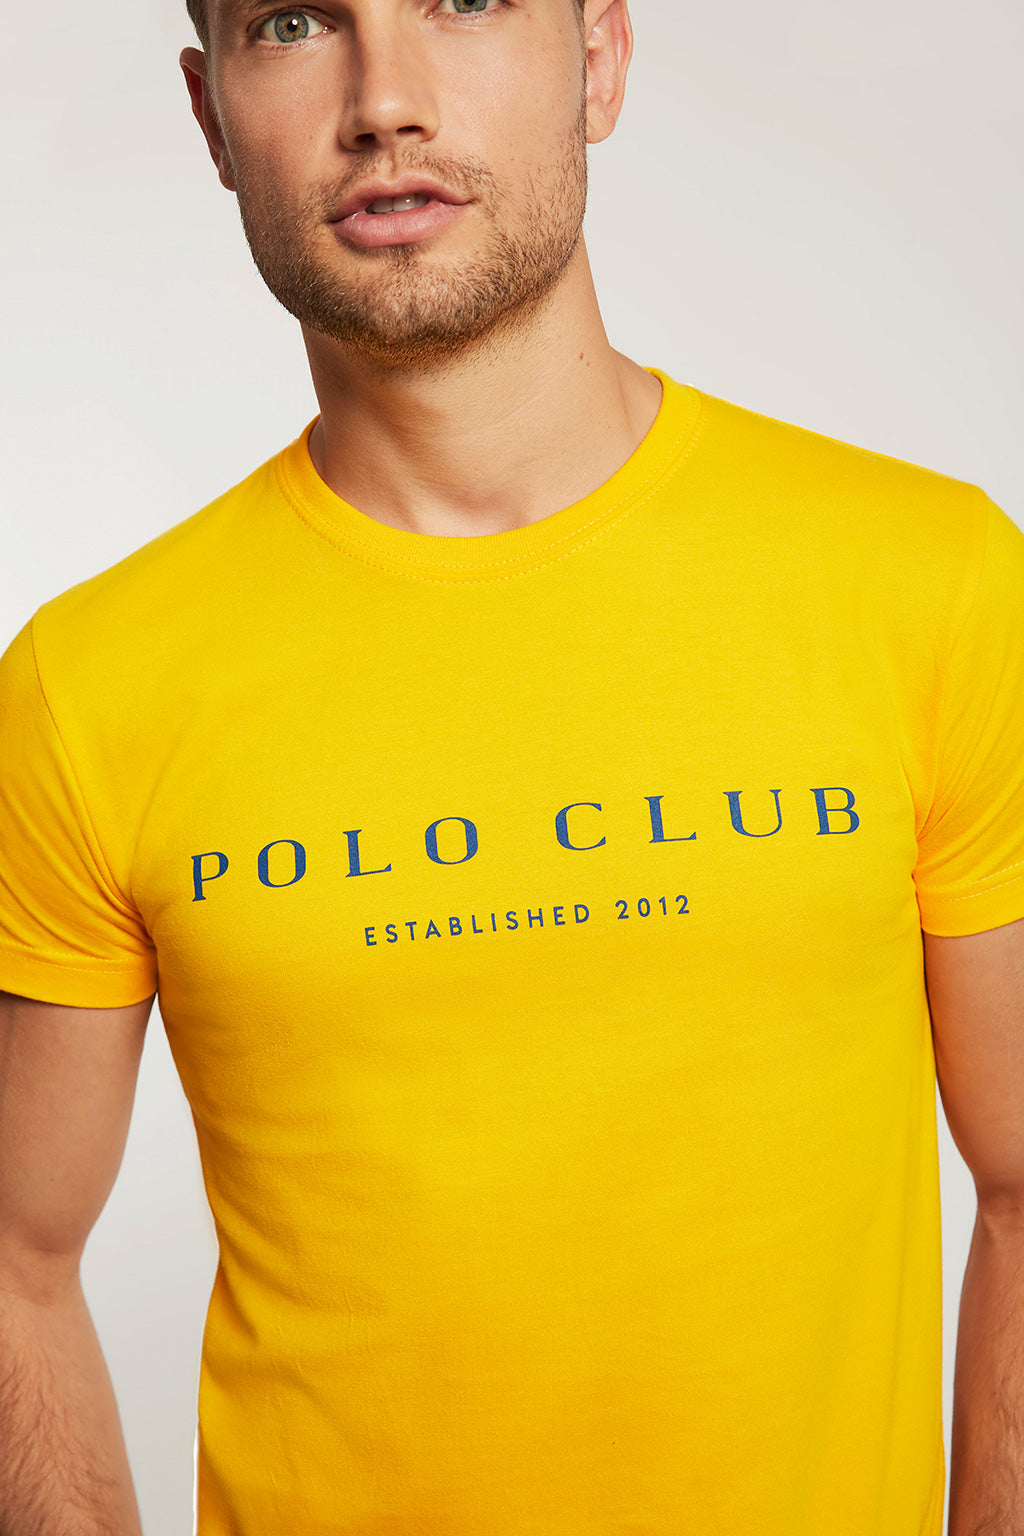 Printed yellow tee